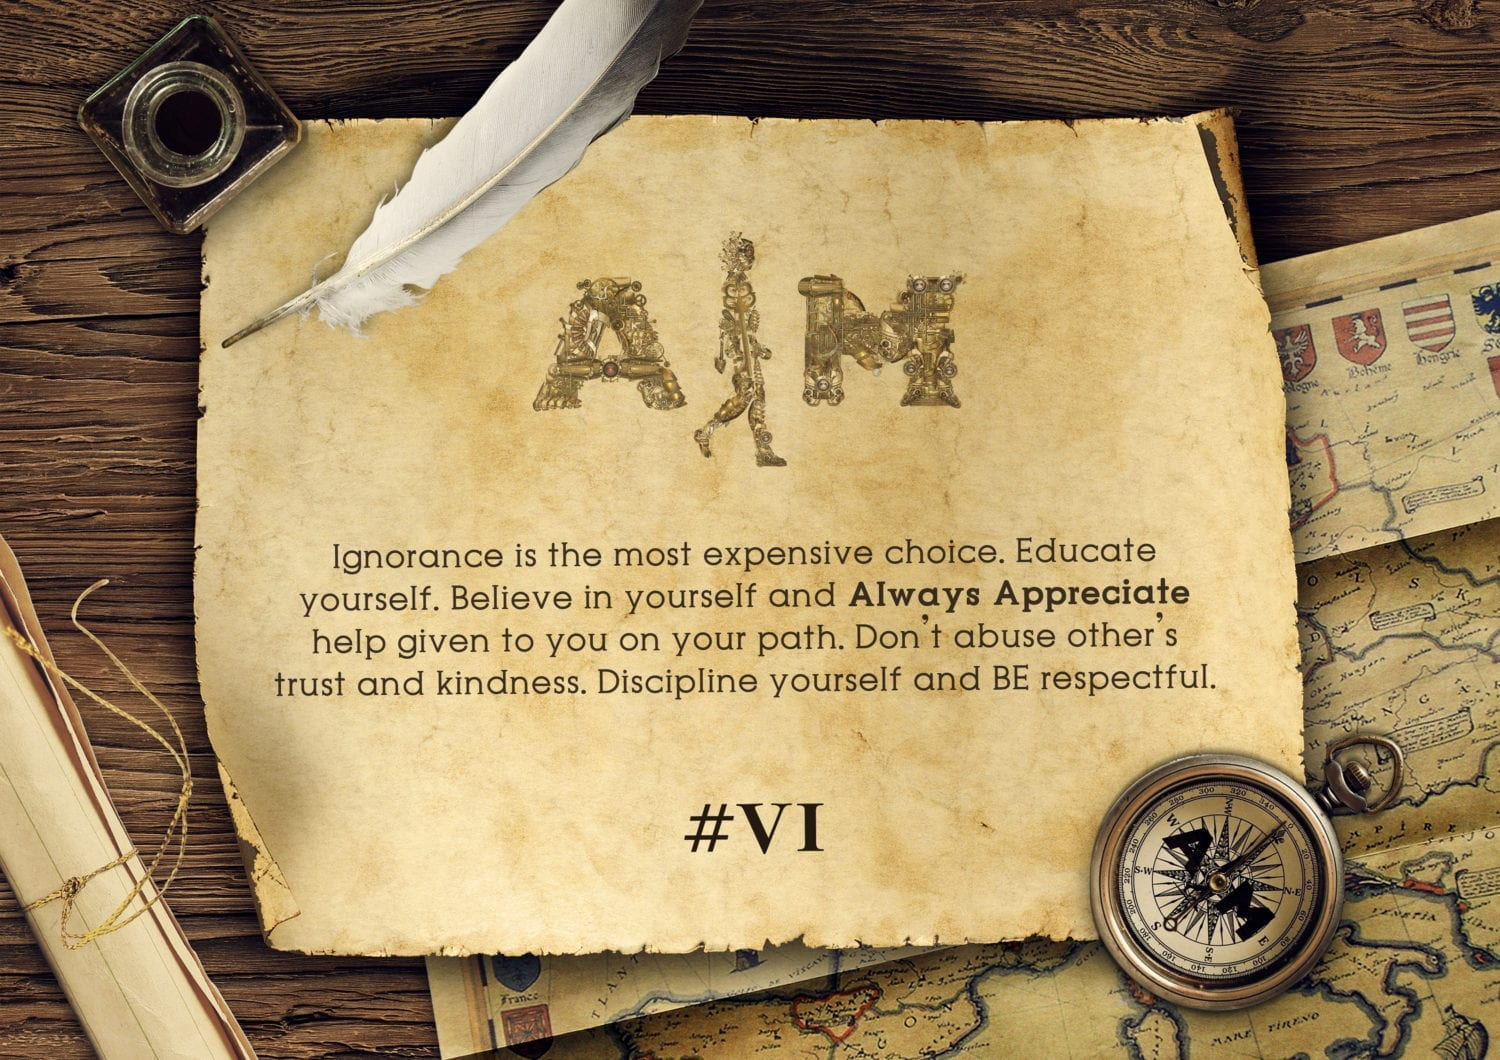 Aim attitude key elements image version II #6